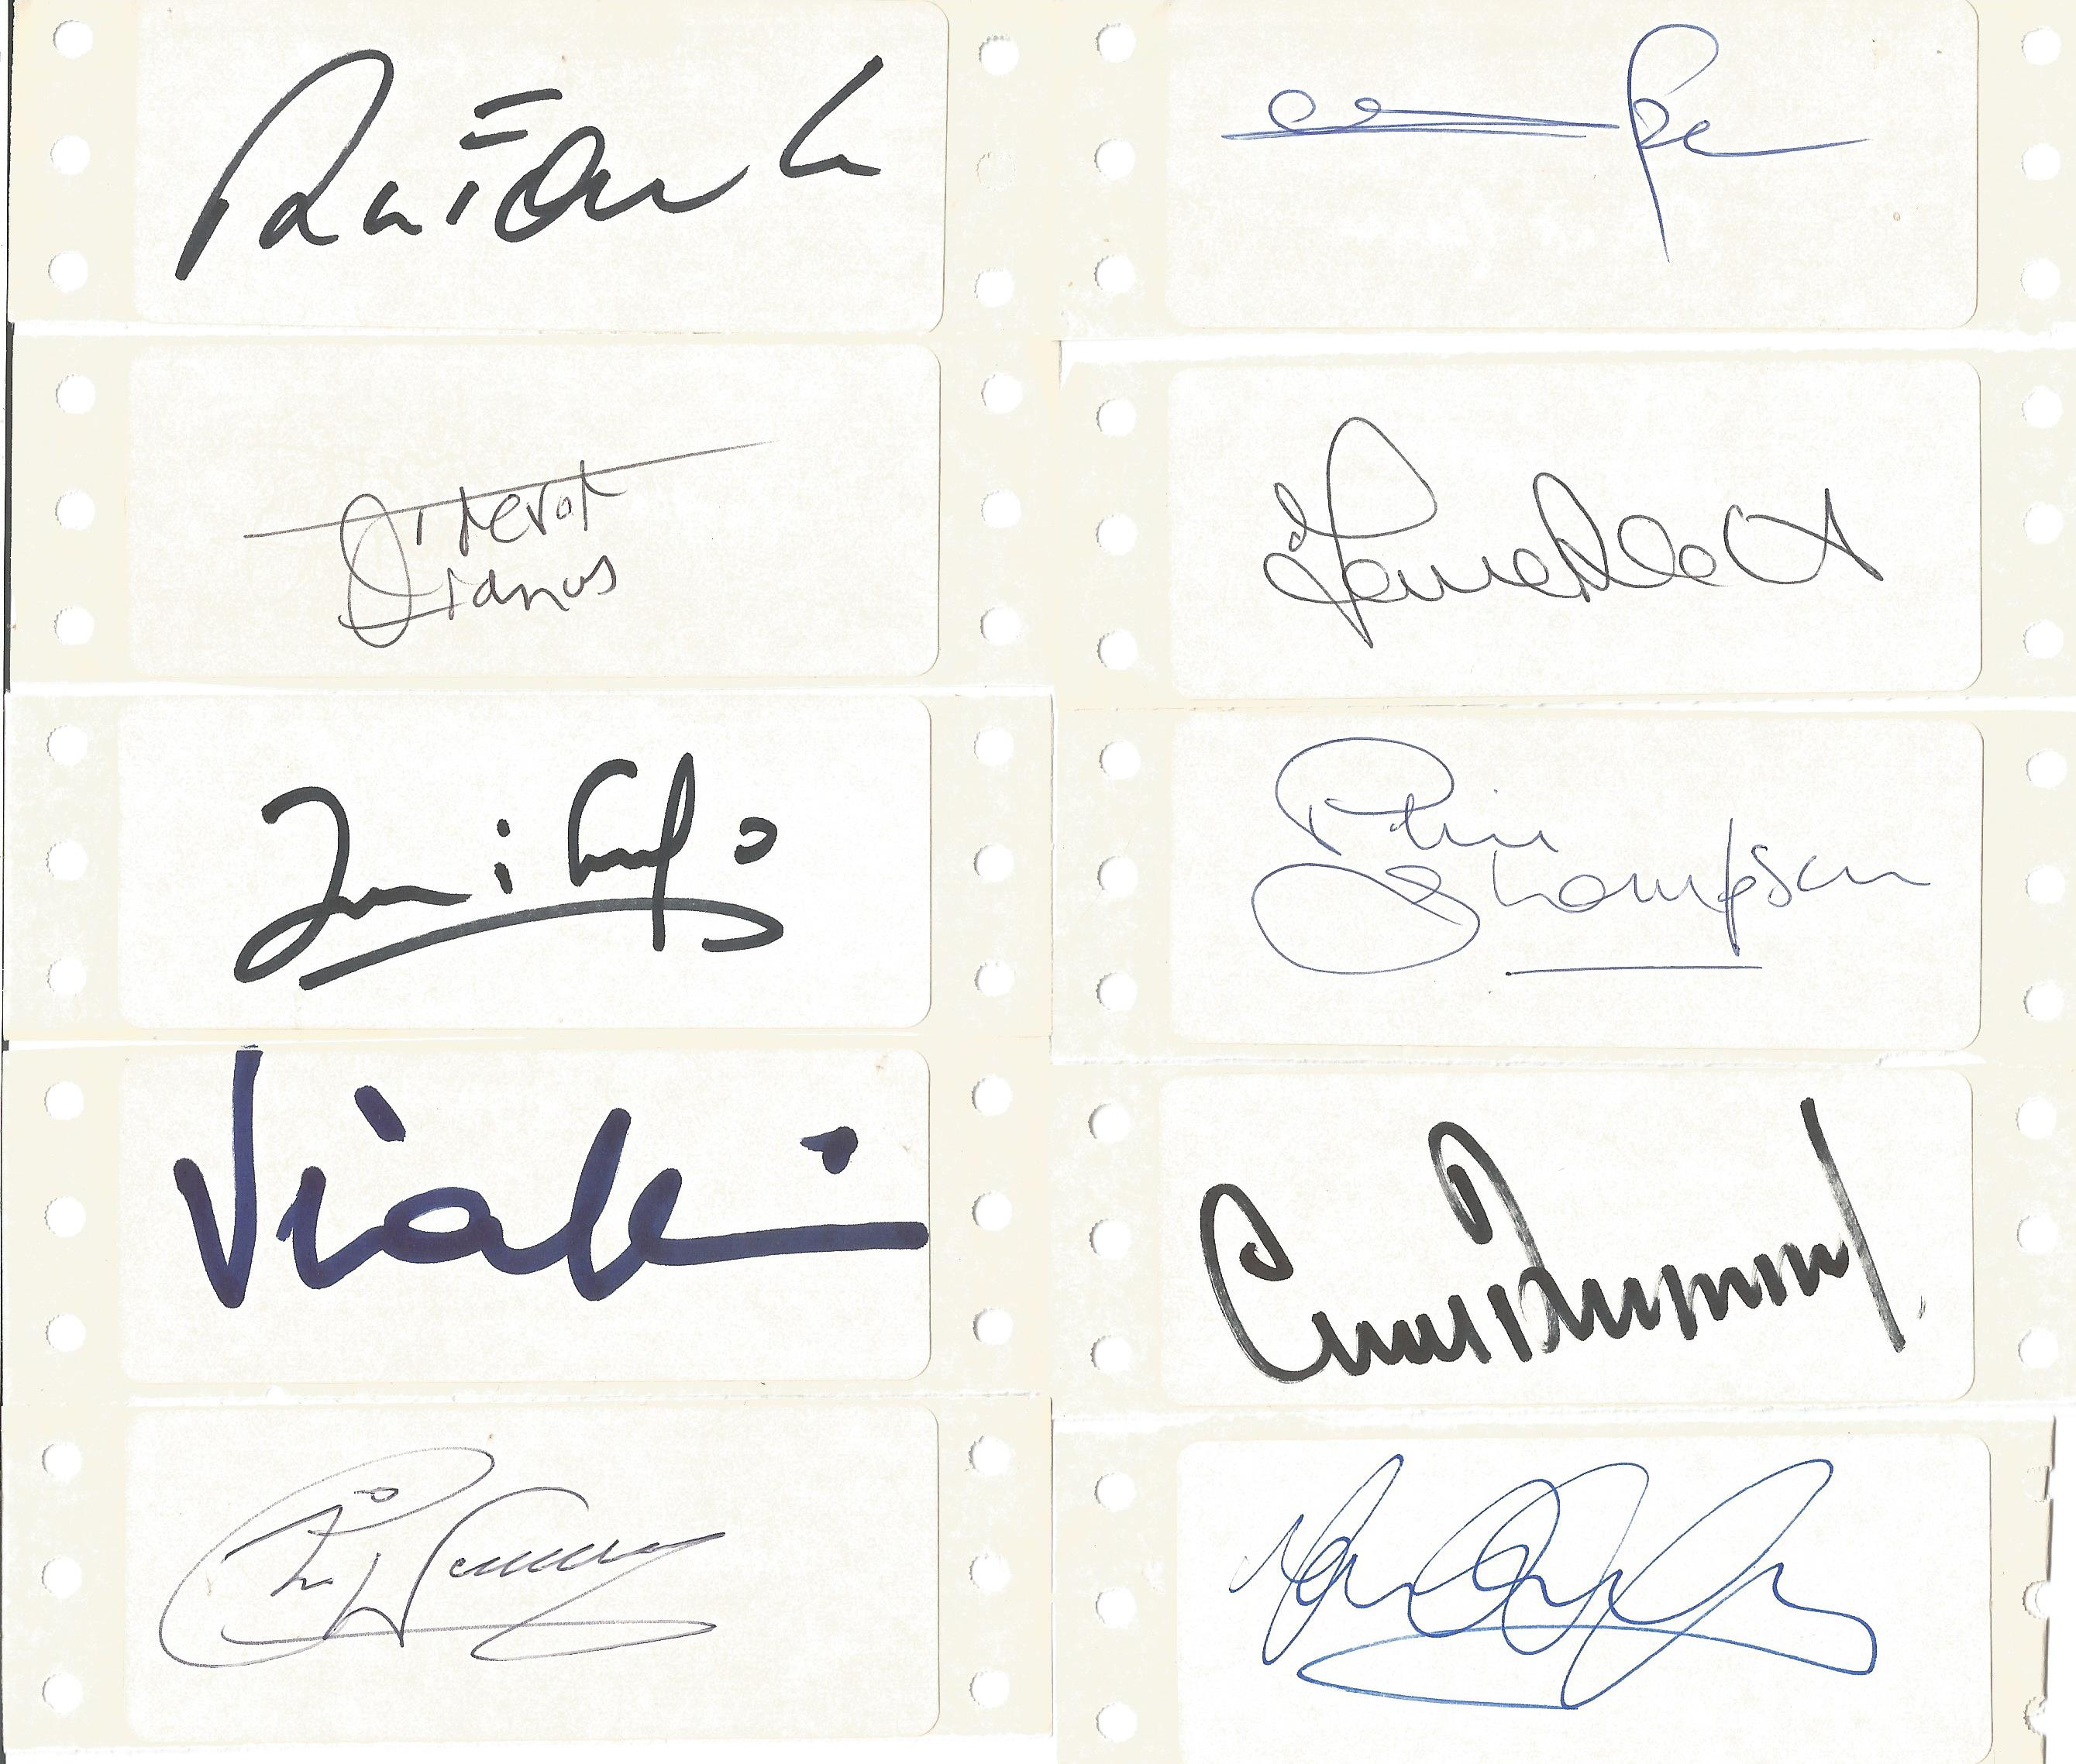 Lot 2 - Football Heroes signed card collection 17 individual signatures on white adhesive labels includes